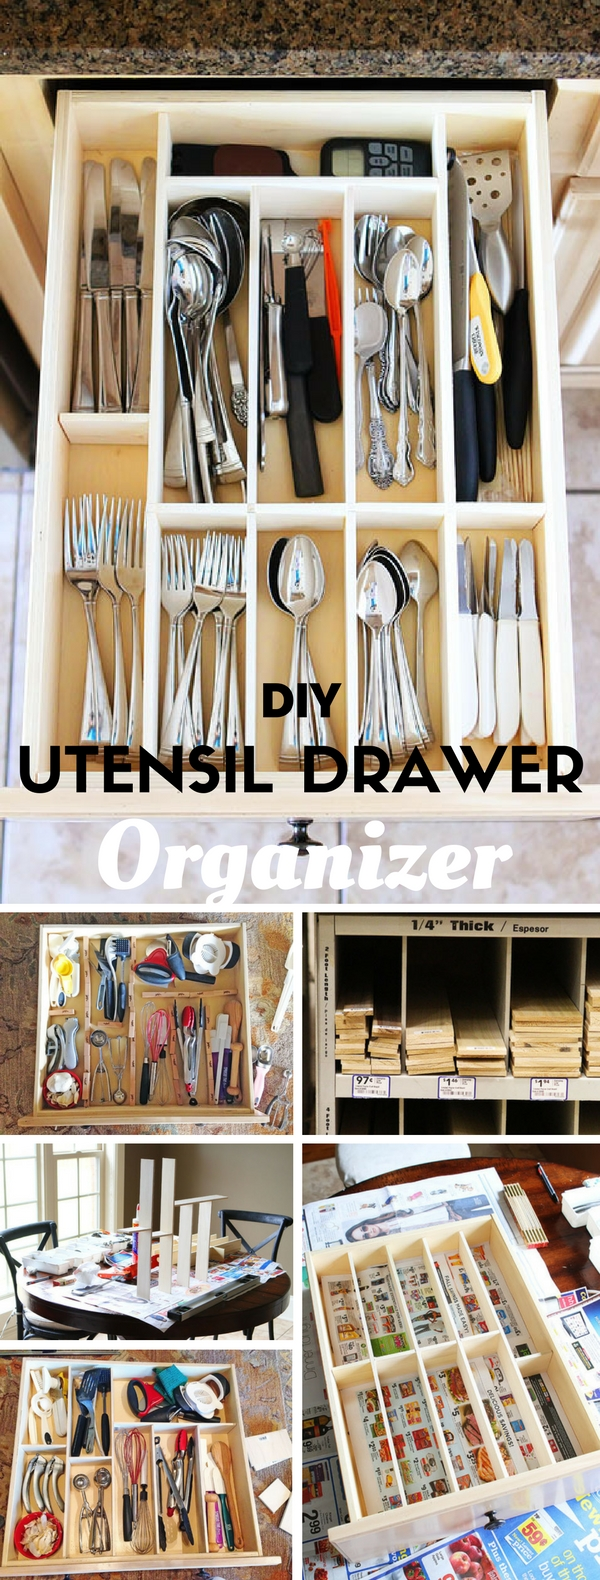 Check out the tutorial: #DIY Kiychen Utensil- Drawer Organizer